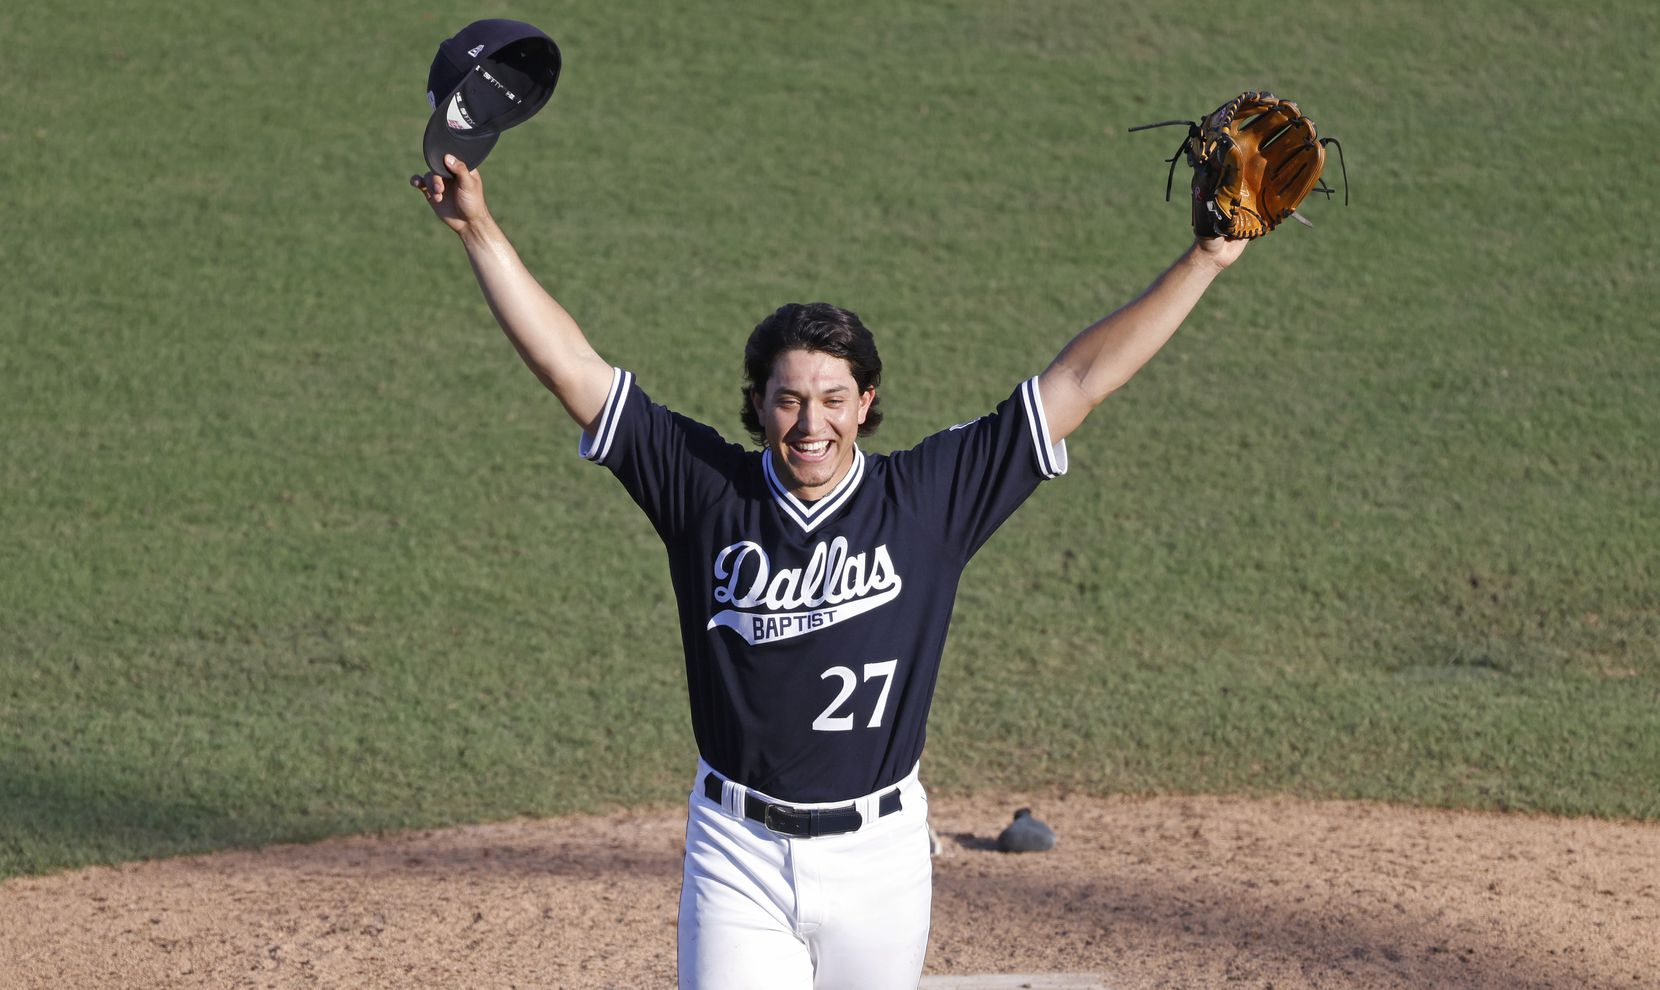 Dallas Baptist pitcher Dominic Hamel (27) celebrates the team's 8-5 win over Oregon St. following the NCAA Division I Baseball Regional Championship game in Fort Worth, Texas on June 7, 2021. (Ron Jenkins/Special Contributor)